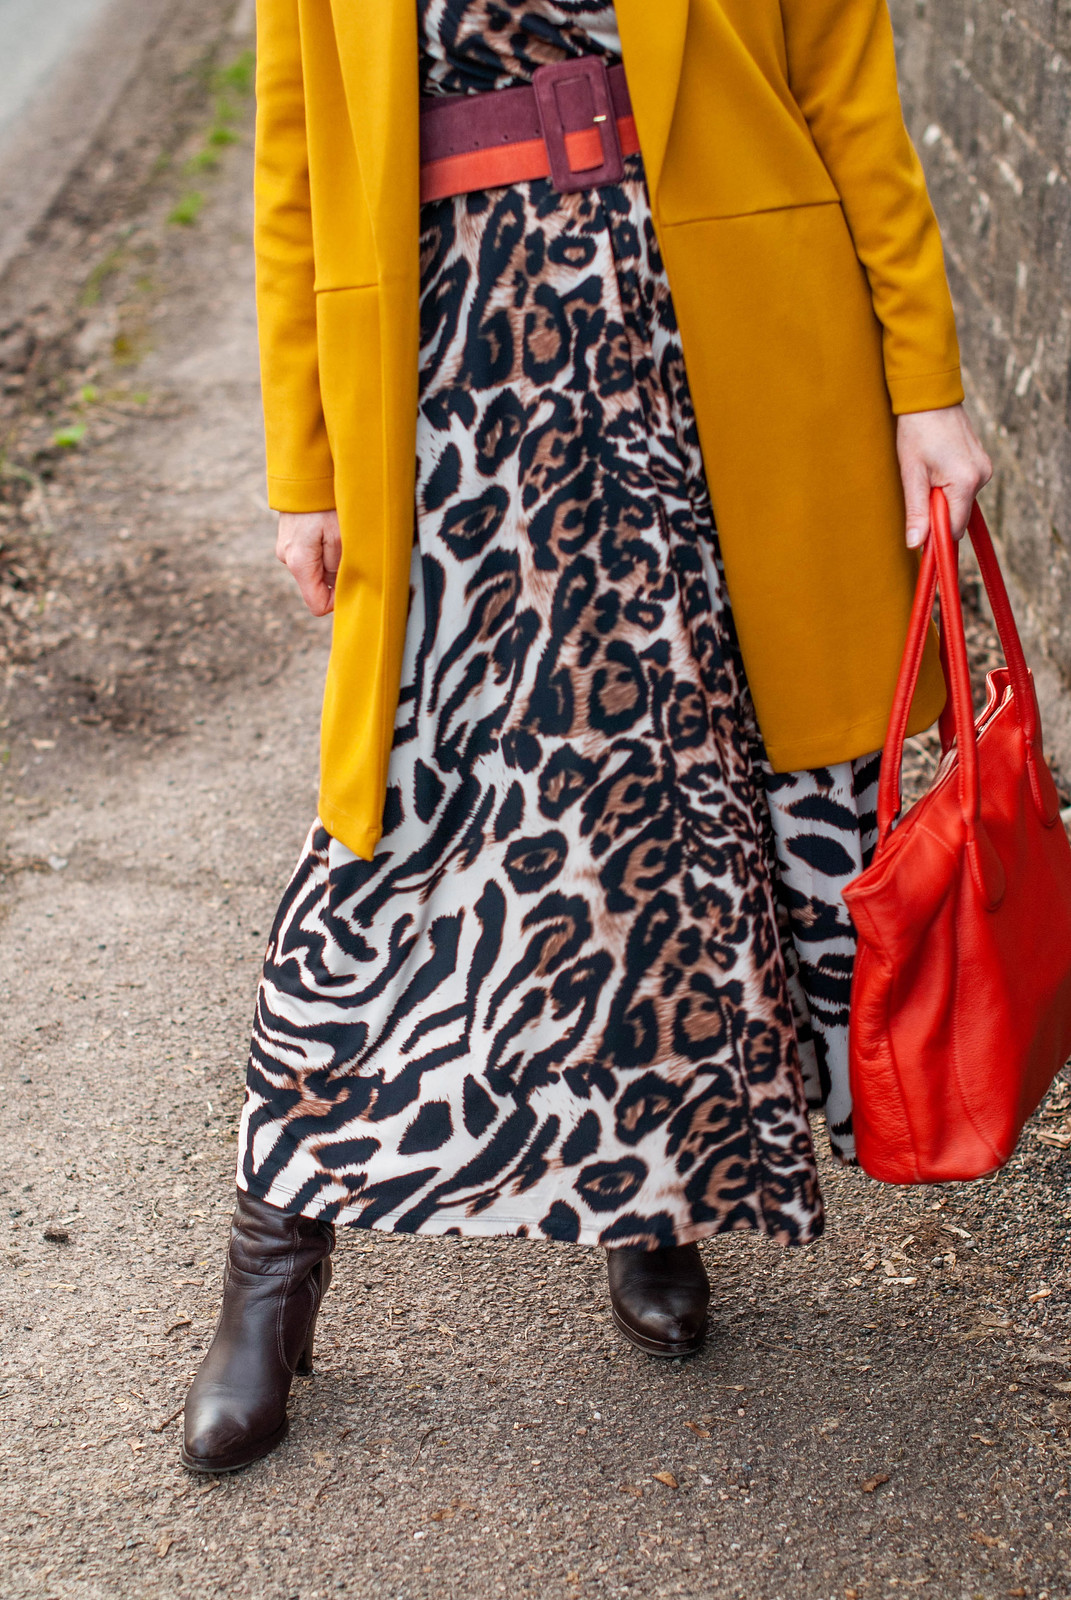 Animal Print Maxi Dress With Yellow and Orange | Not Dressed As Lamb, Over 40 Style